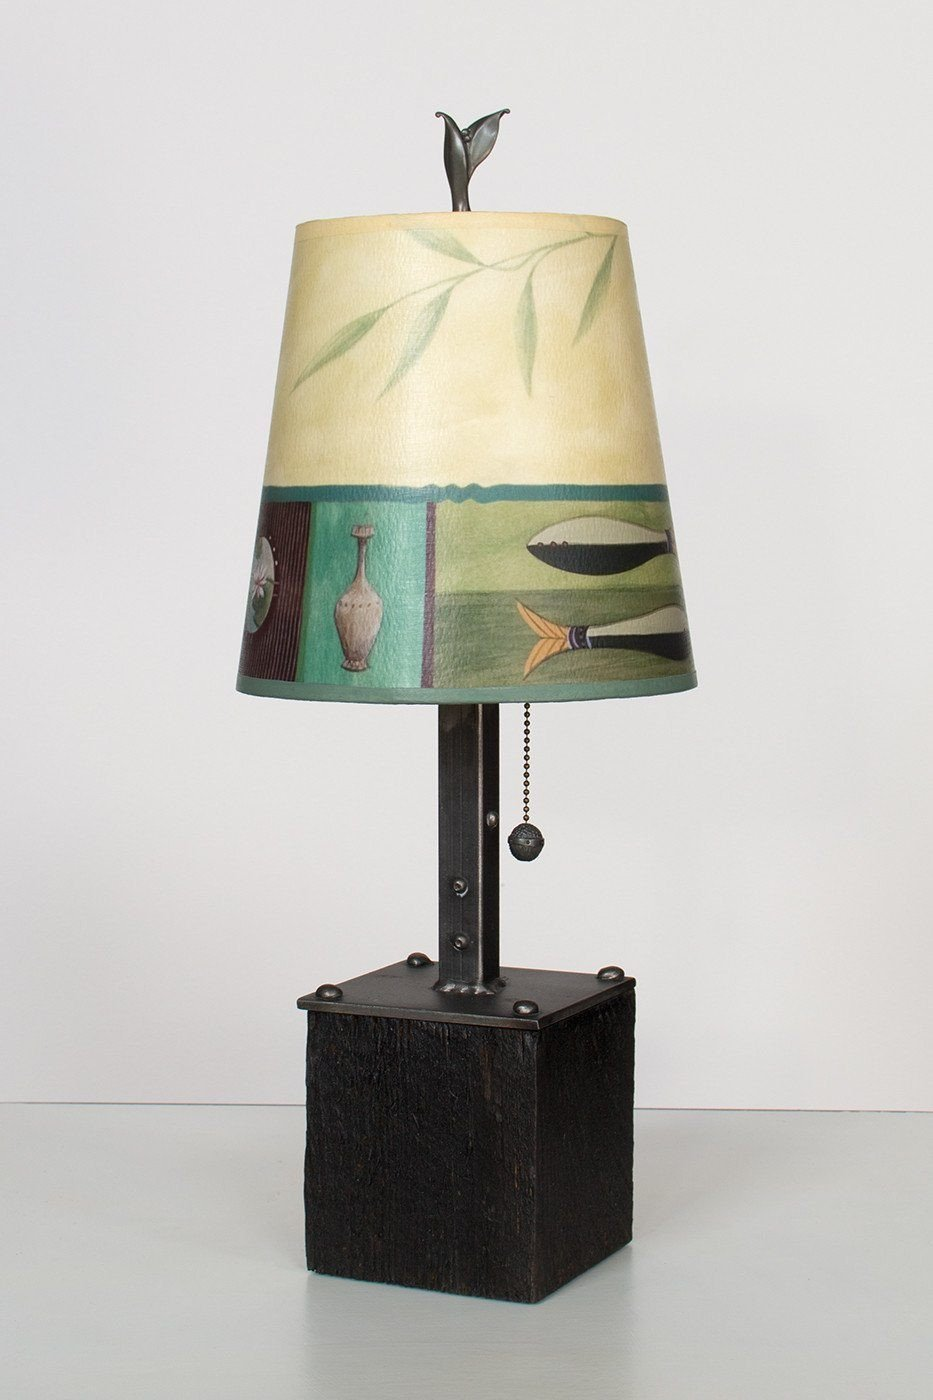 Steel Table Lamp on Reclaimed Wood with Small Drum Shade in Twin Fish Lit